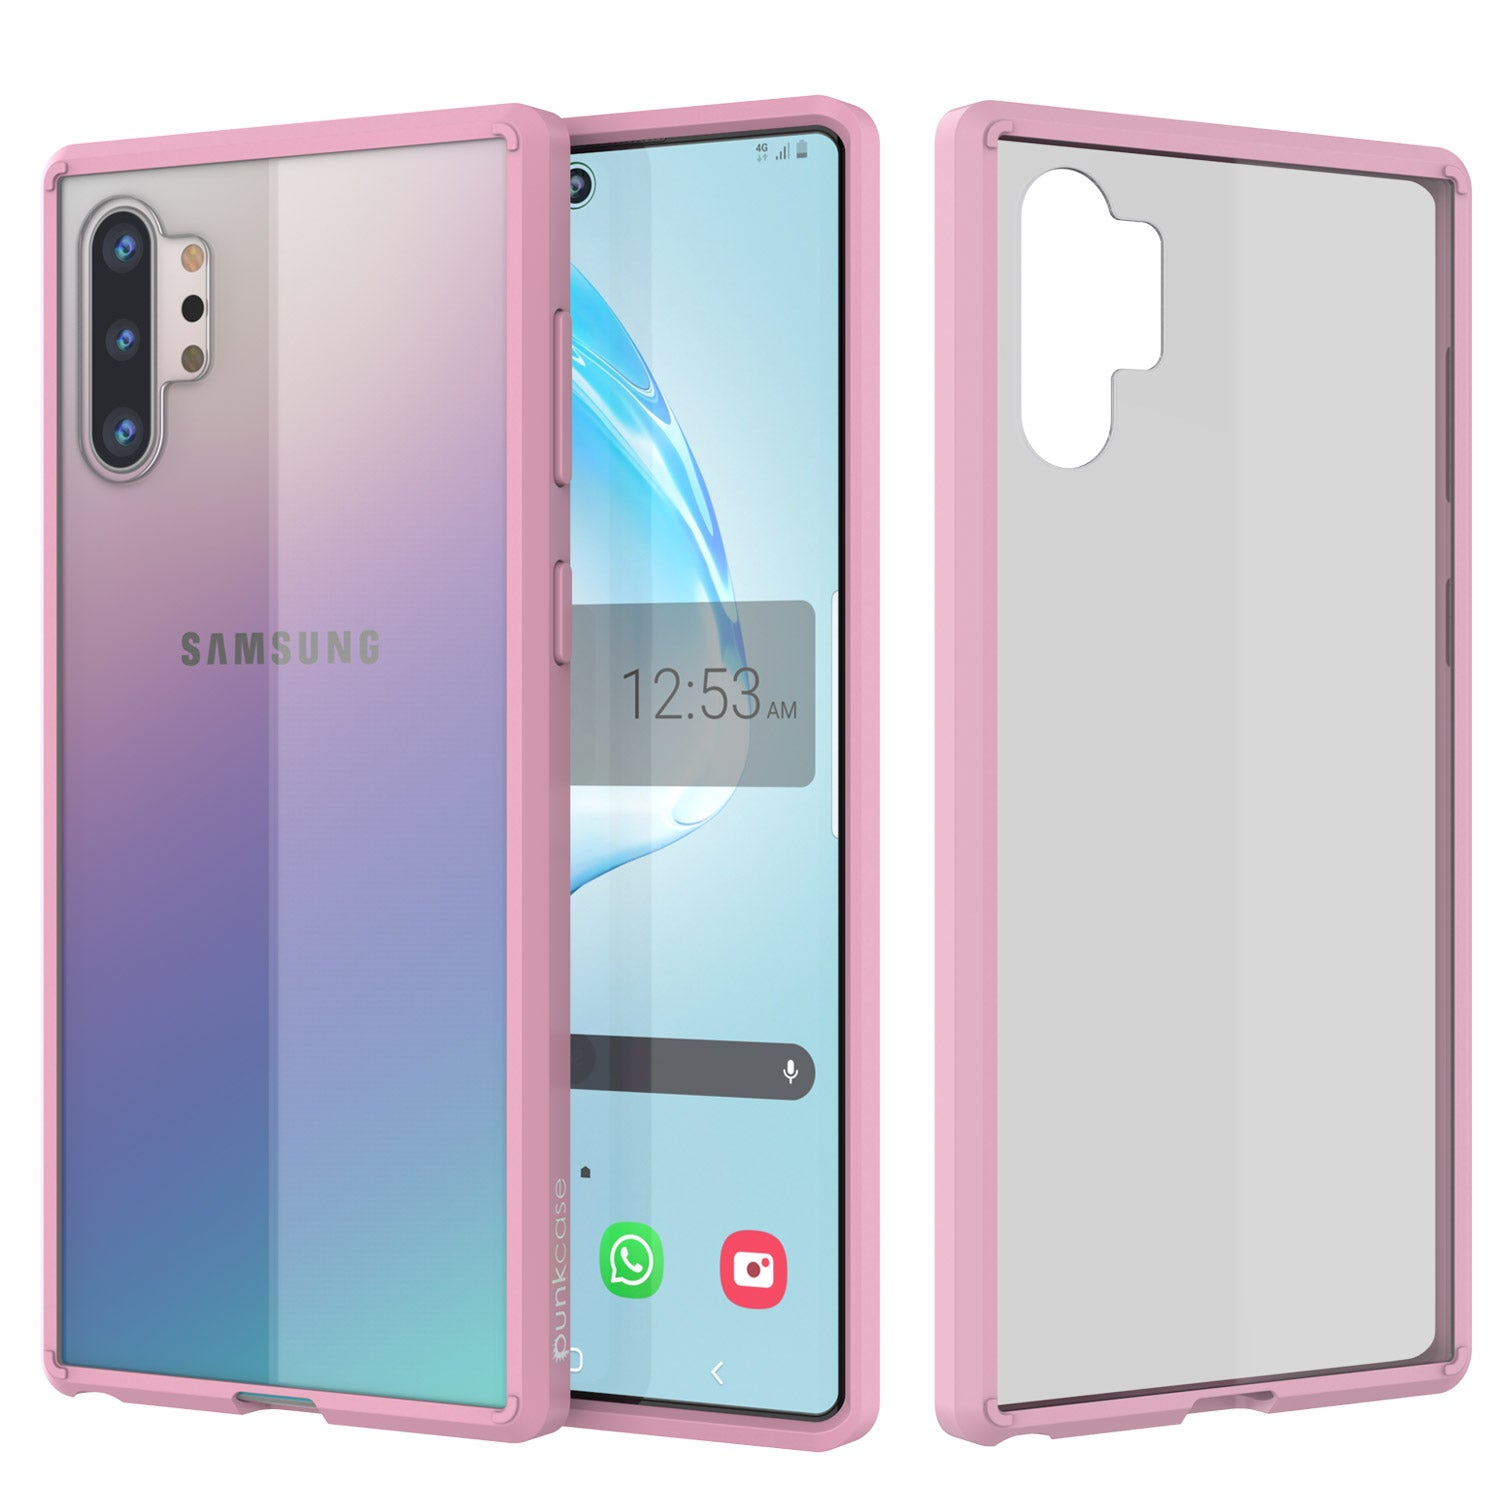 Galaxy Note 10+ Plus Punkcase Lucid-2.0 Series Slim Fit Armor Pink Case Cover